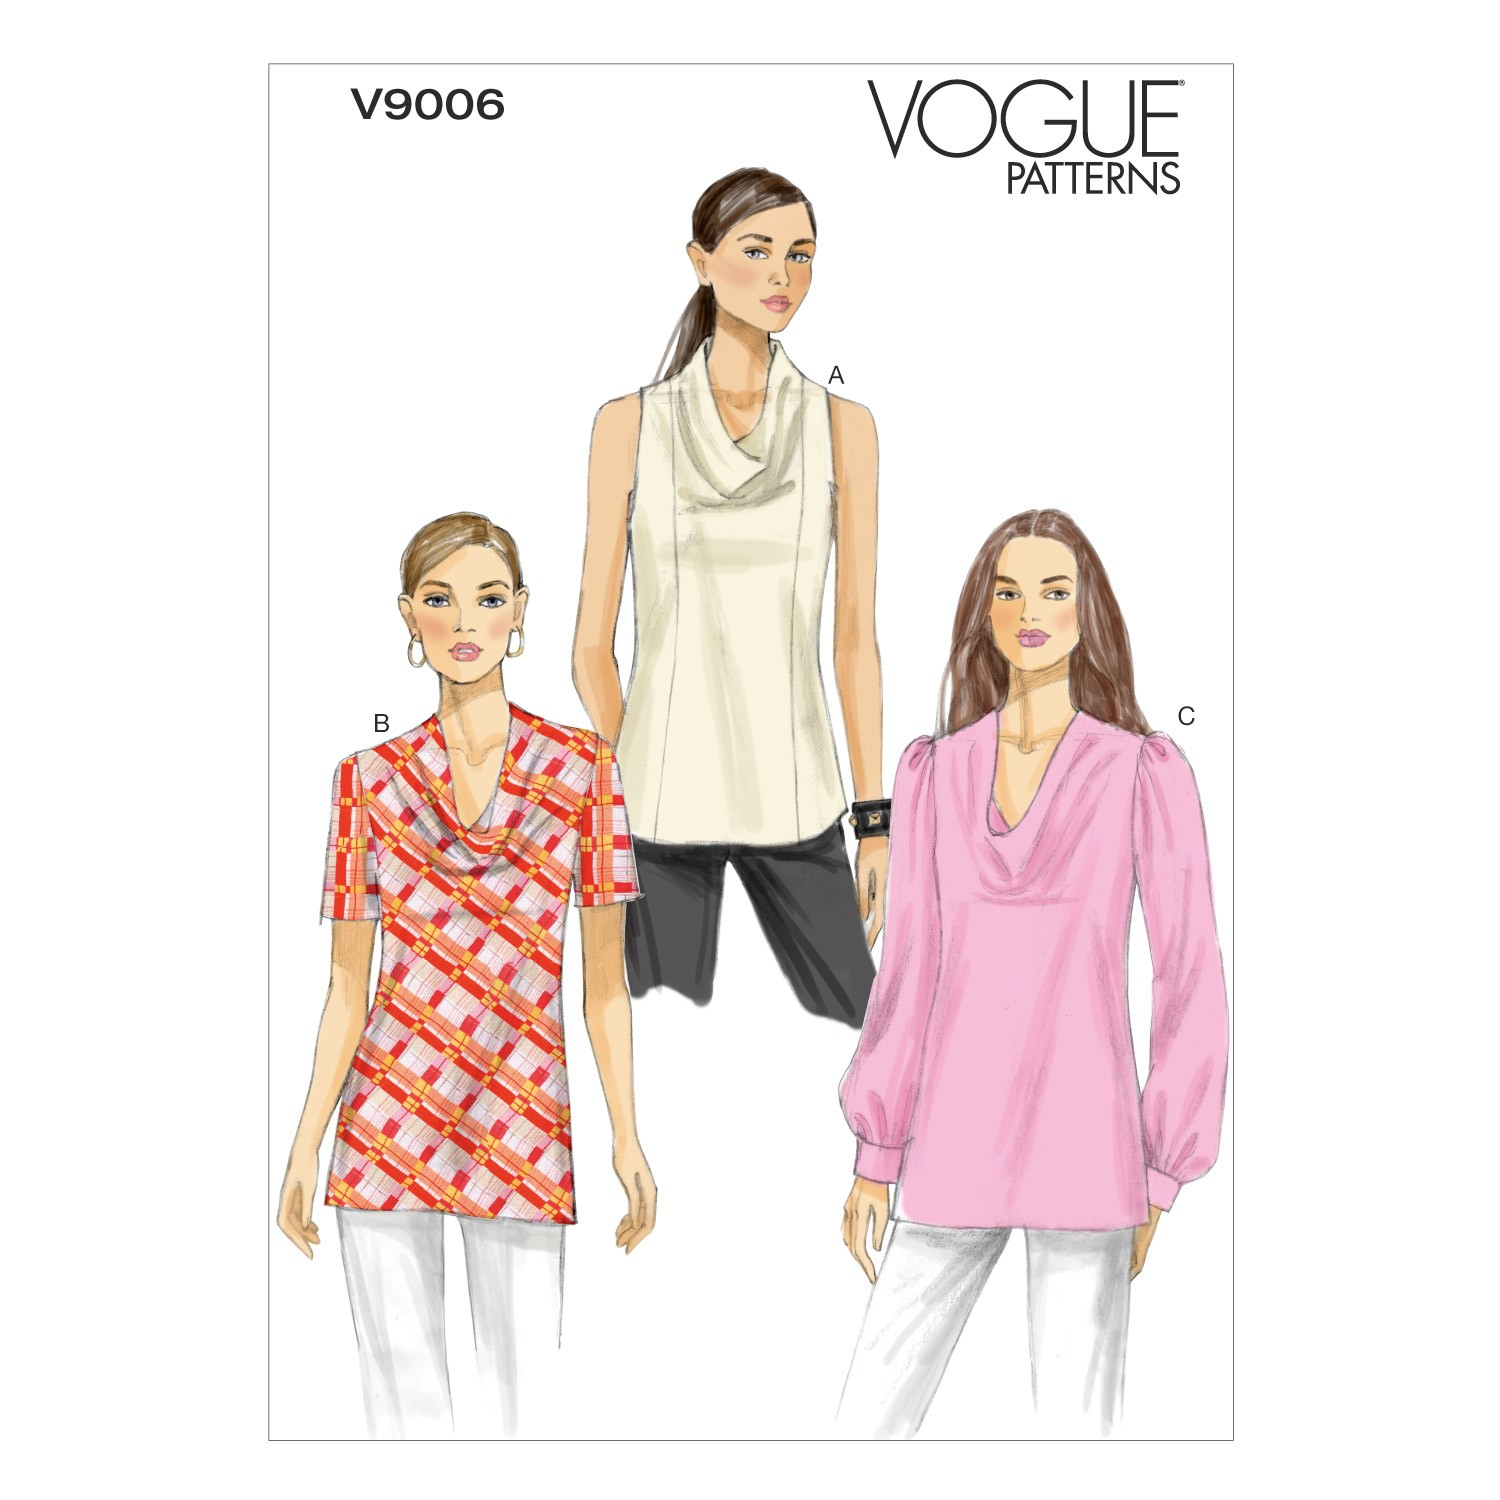 Vogue Sewing Pattern V9006 Women's Top With Draped Neck Line